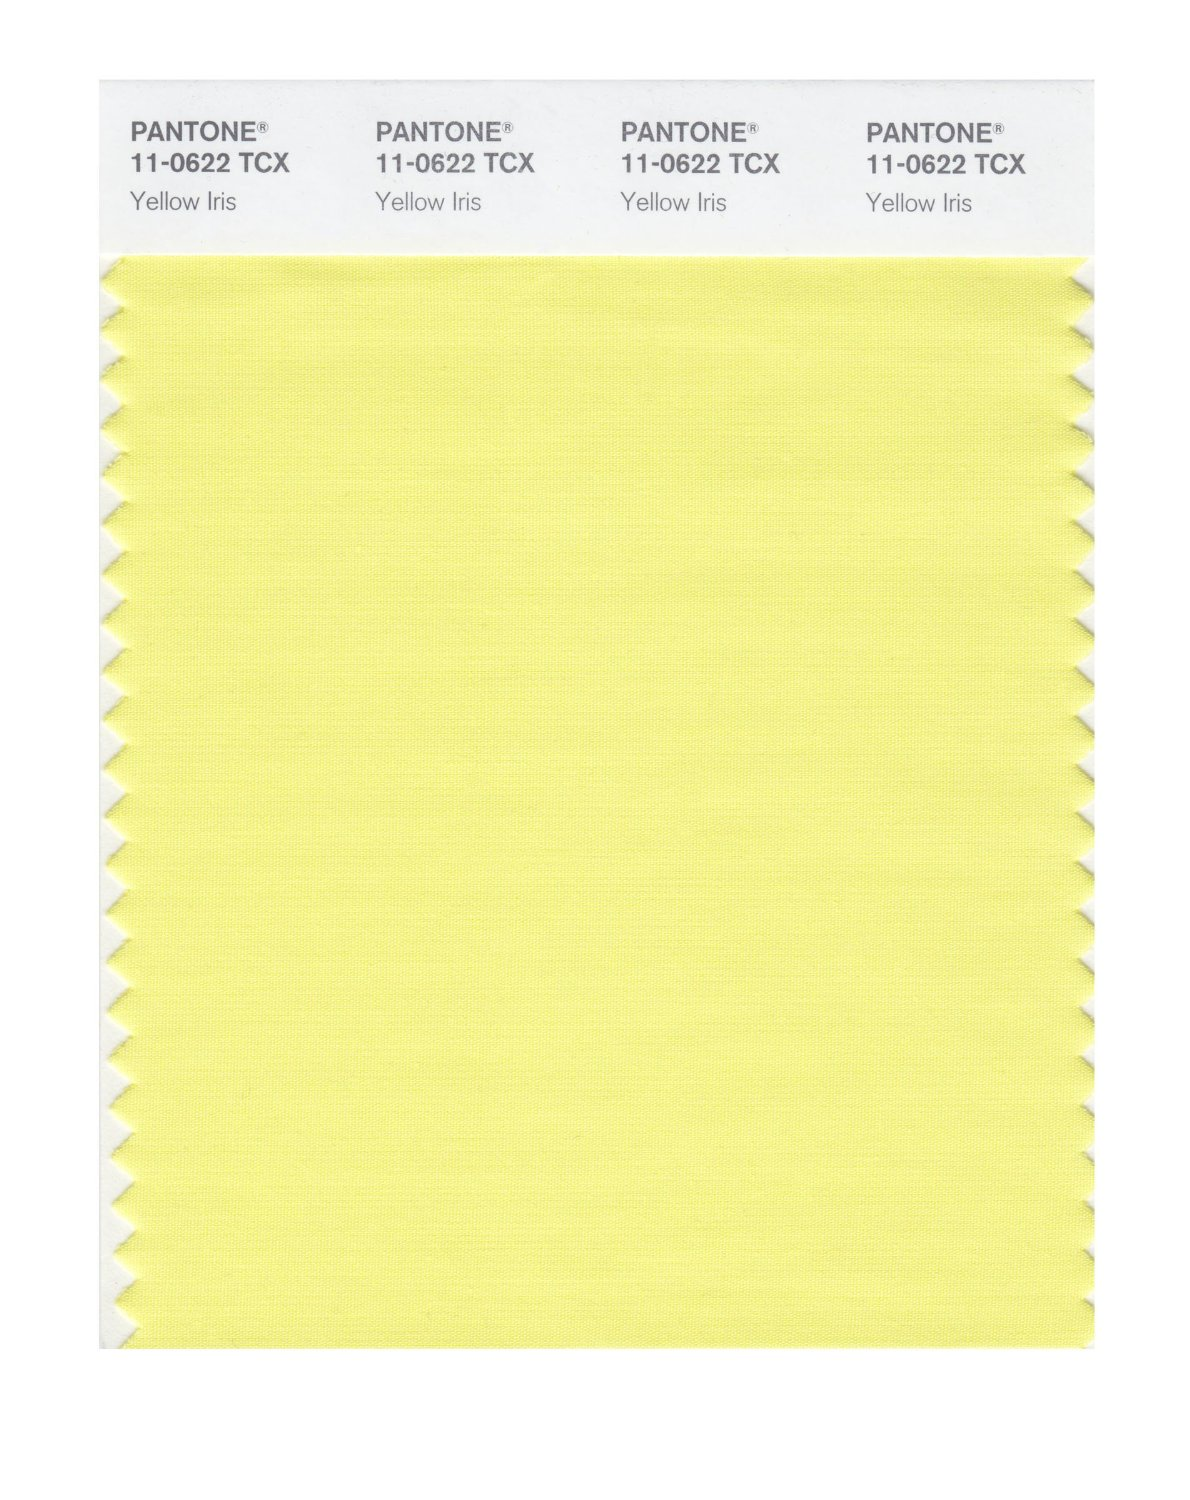 Pantone Smart Swatch 11-0622 Yellow Iris